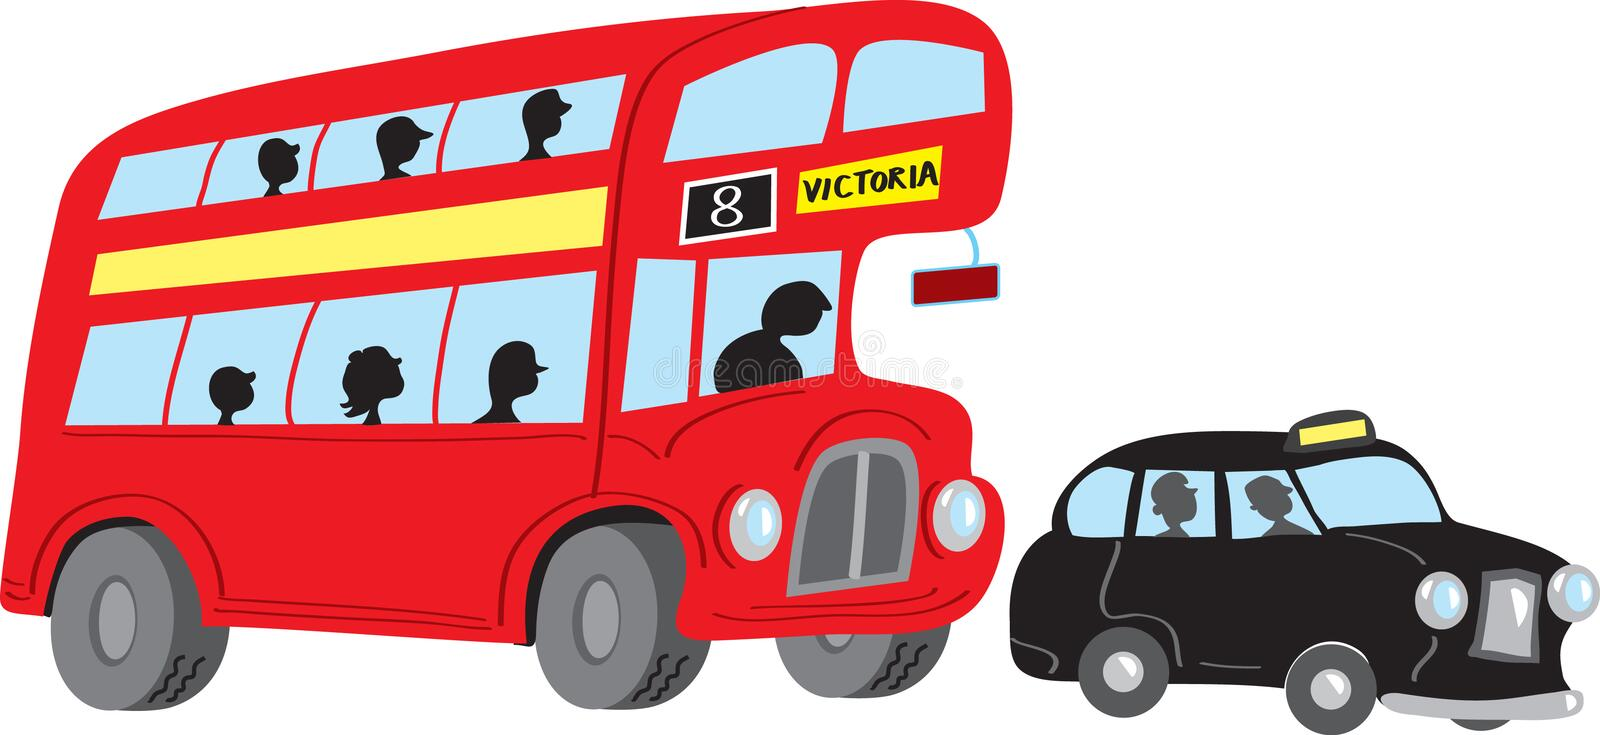 bussen london taxar vektor illustrationer